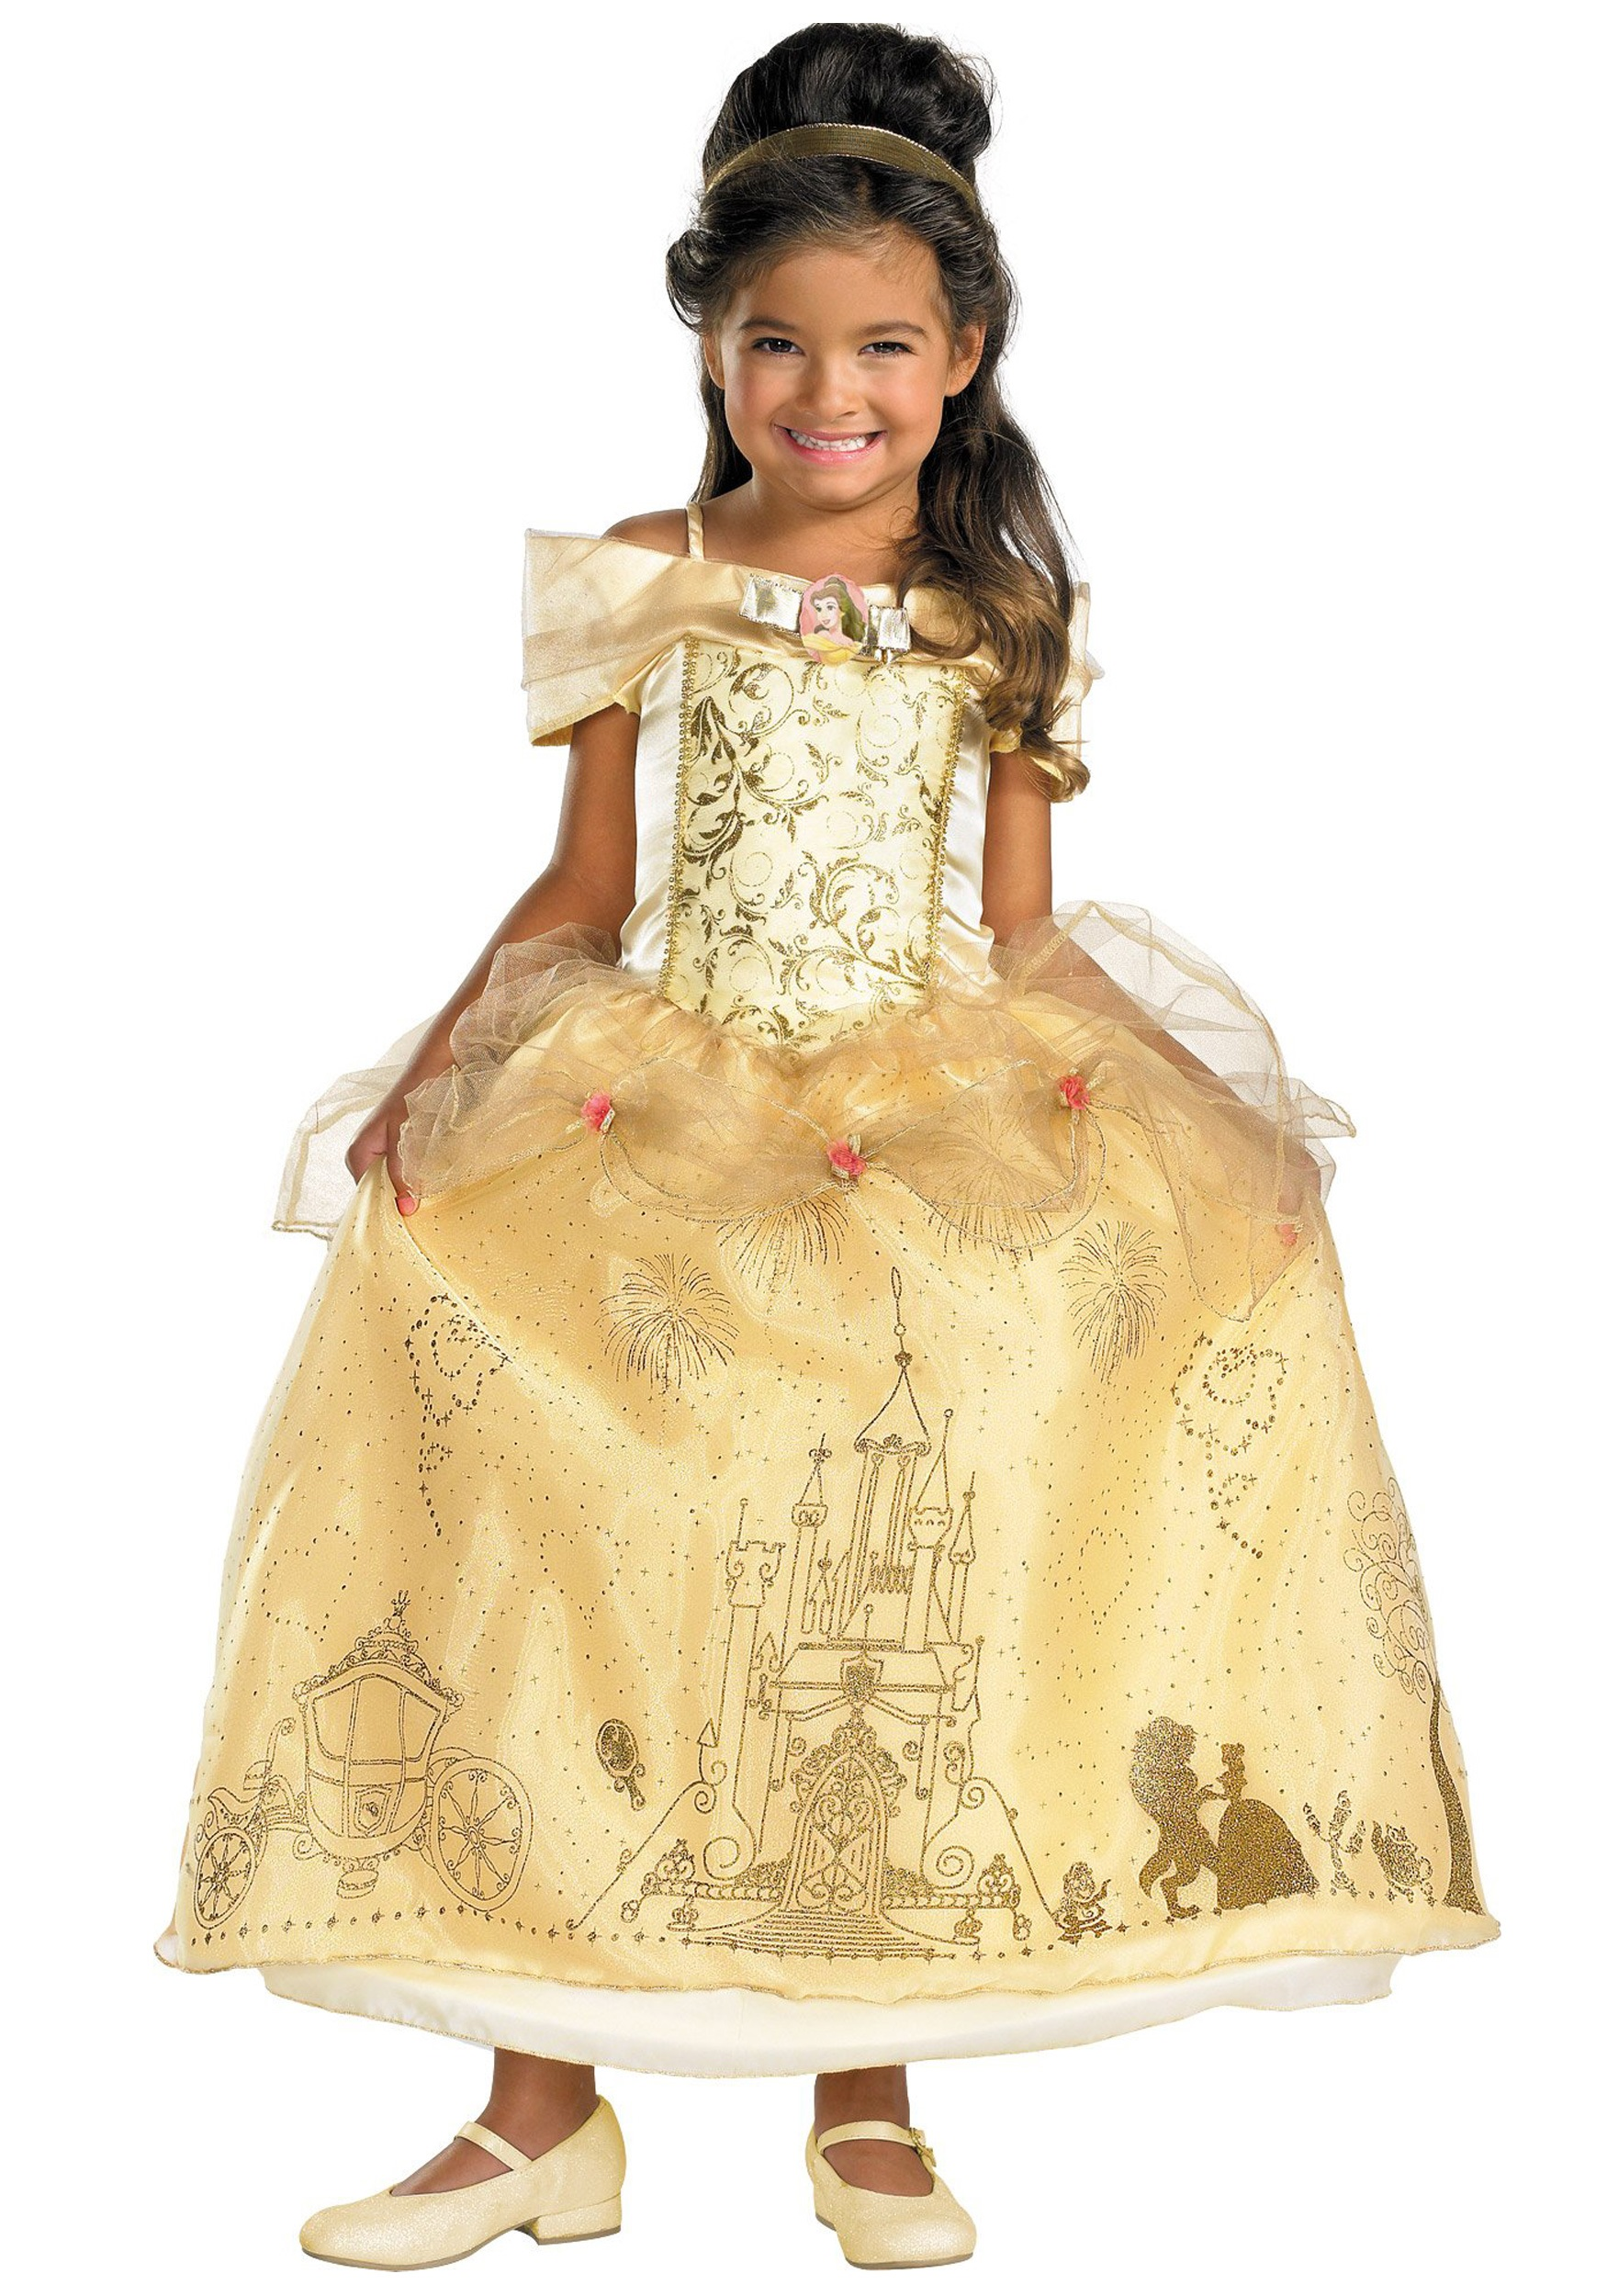 Kids' Prestige Belle Costume